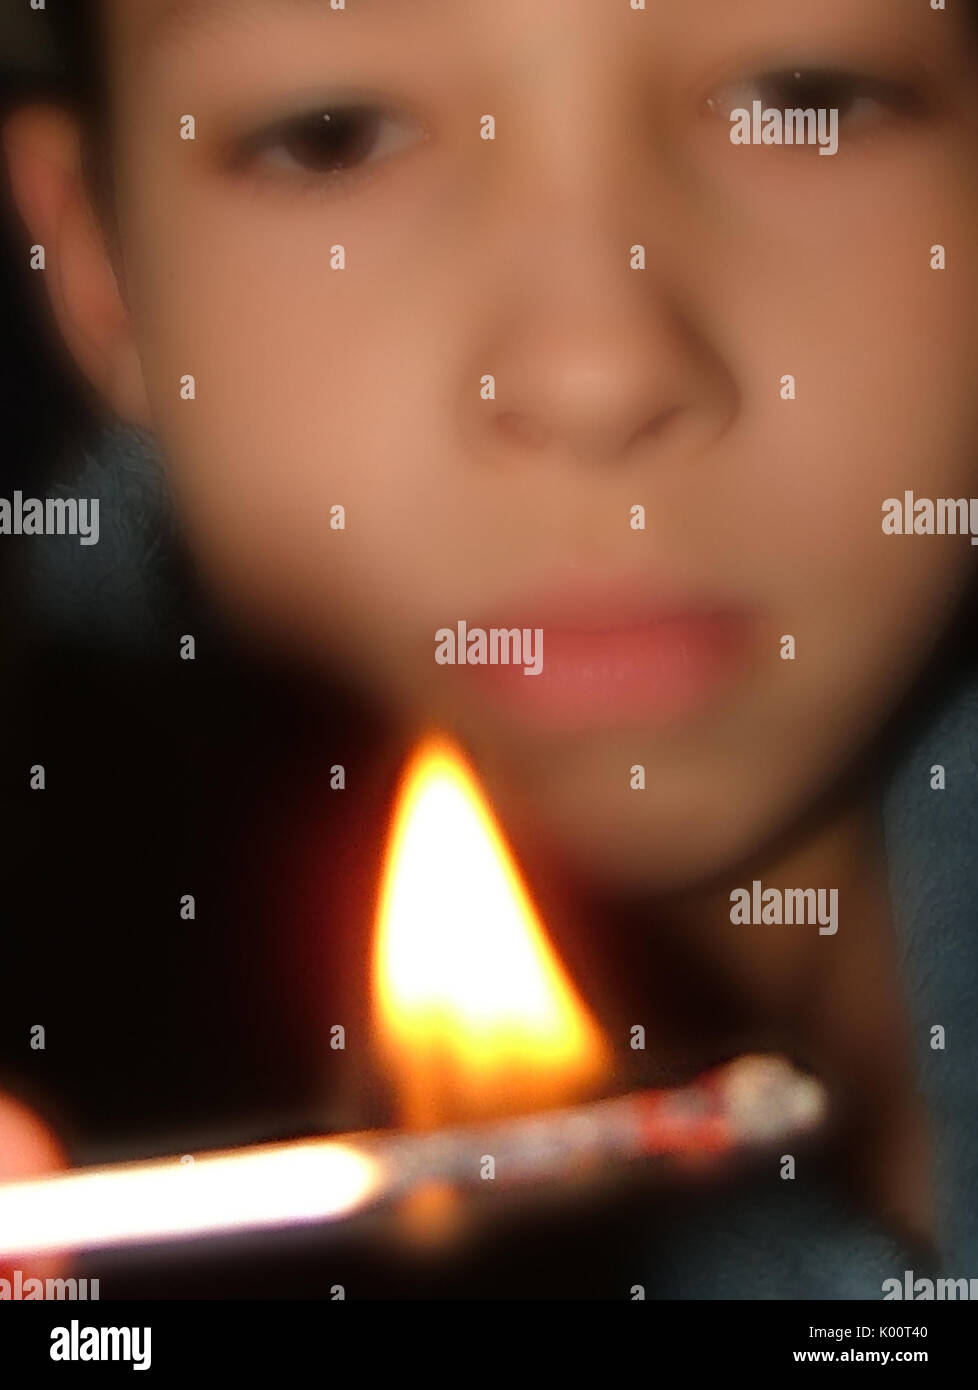 ARSON, child playing with fire - Stock Image